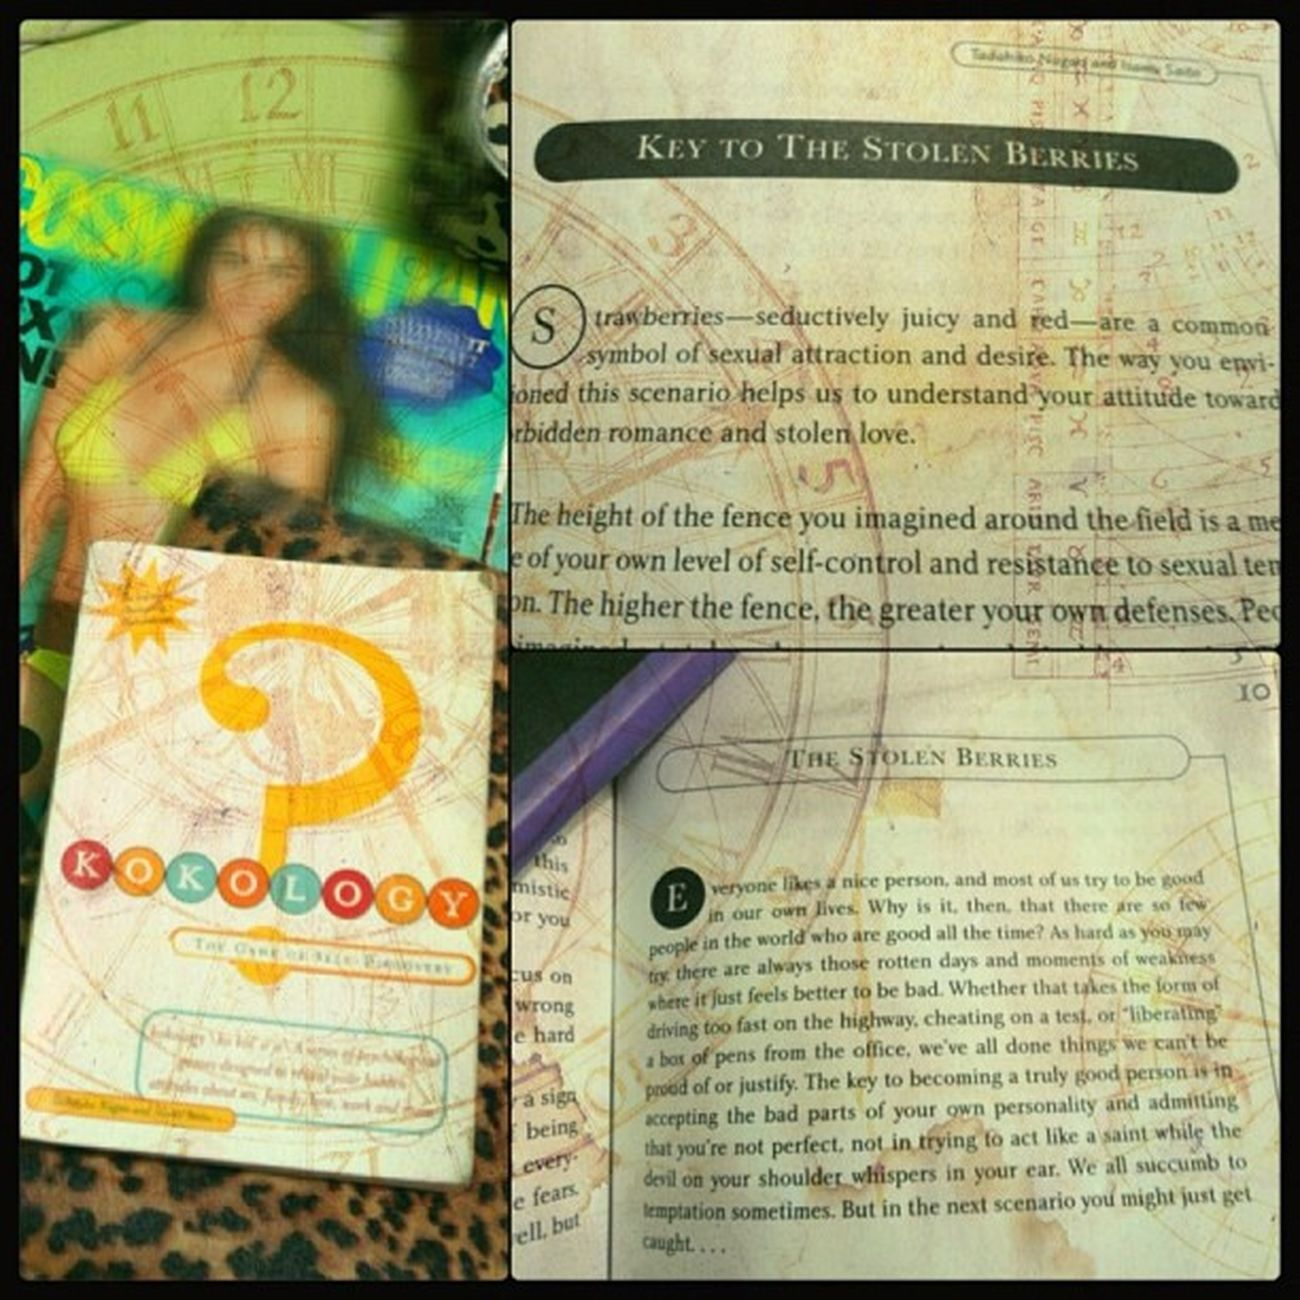 Getting to know myself through Kokology ! This book is a microscope into my soul...a Cheaper portable version of a psychologist, psychoanalyist, and counselor all in one. Hahaha Mustread Selfconfessed kokologyaddictinteresting 👍😉